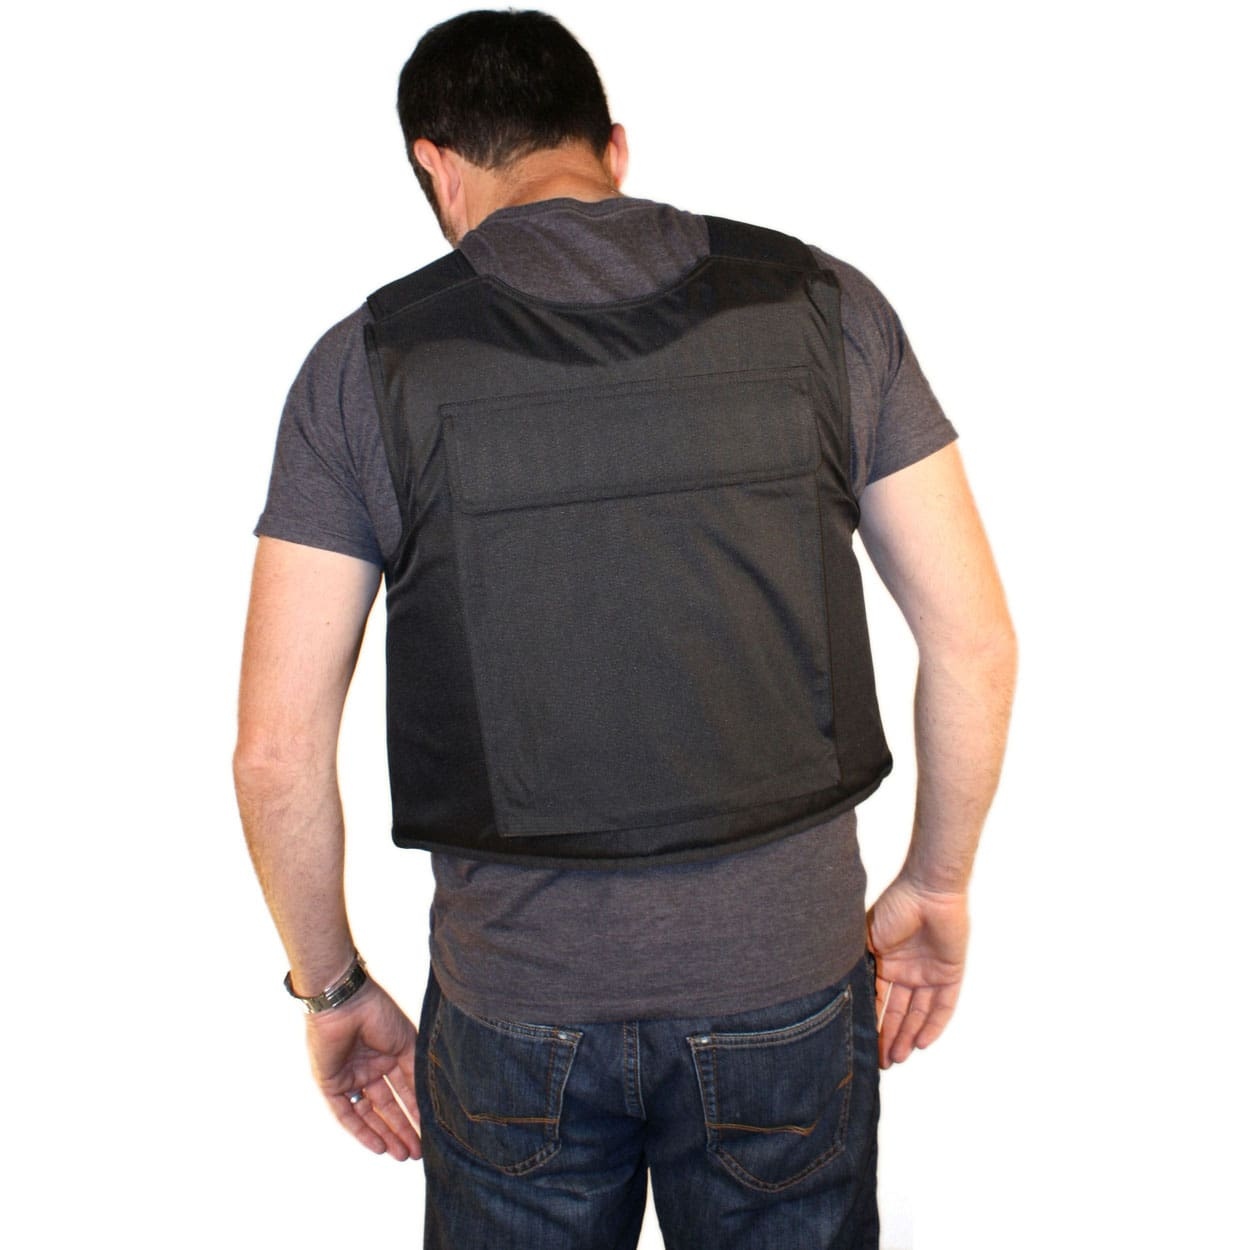 bulletsafe-vest-back-view-min.jpg